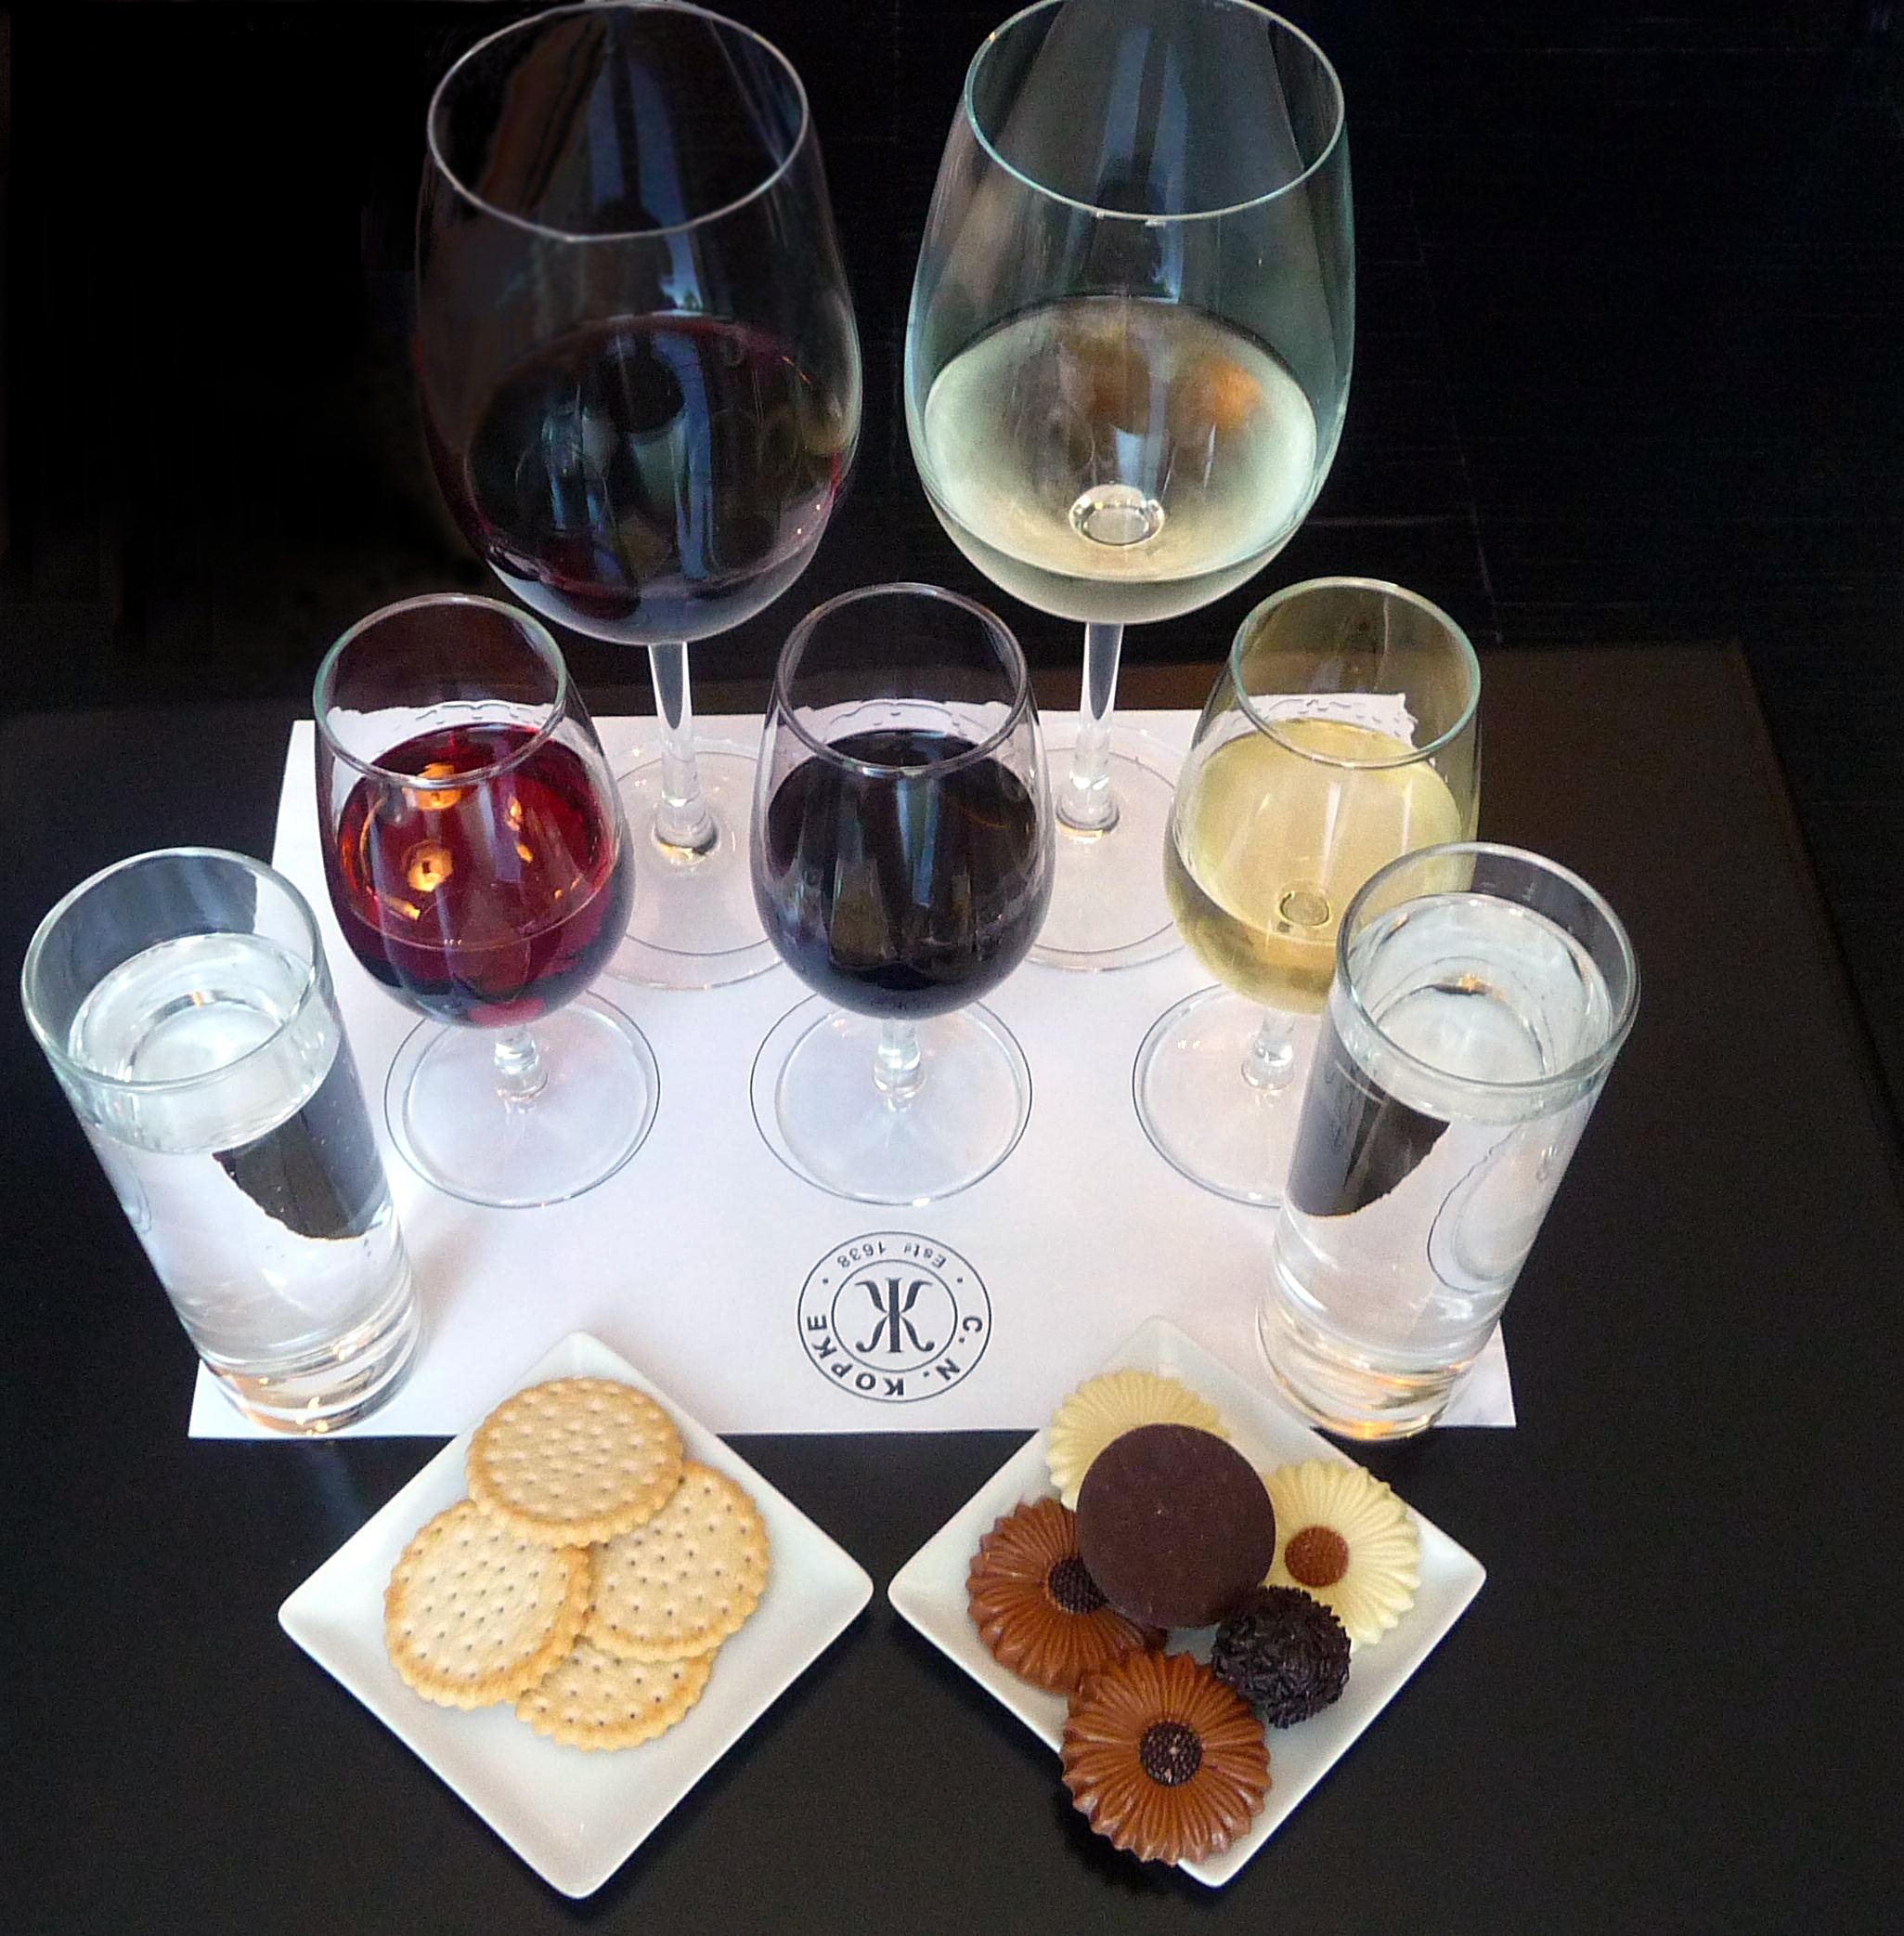 Tawny, ruby and white port samples along with cracker and chocolate pairings in Portugal